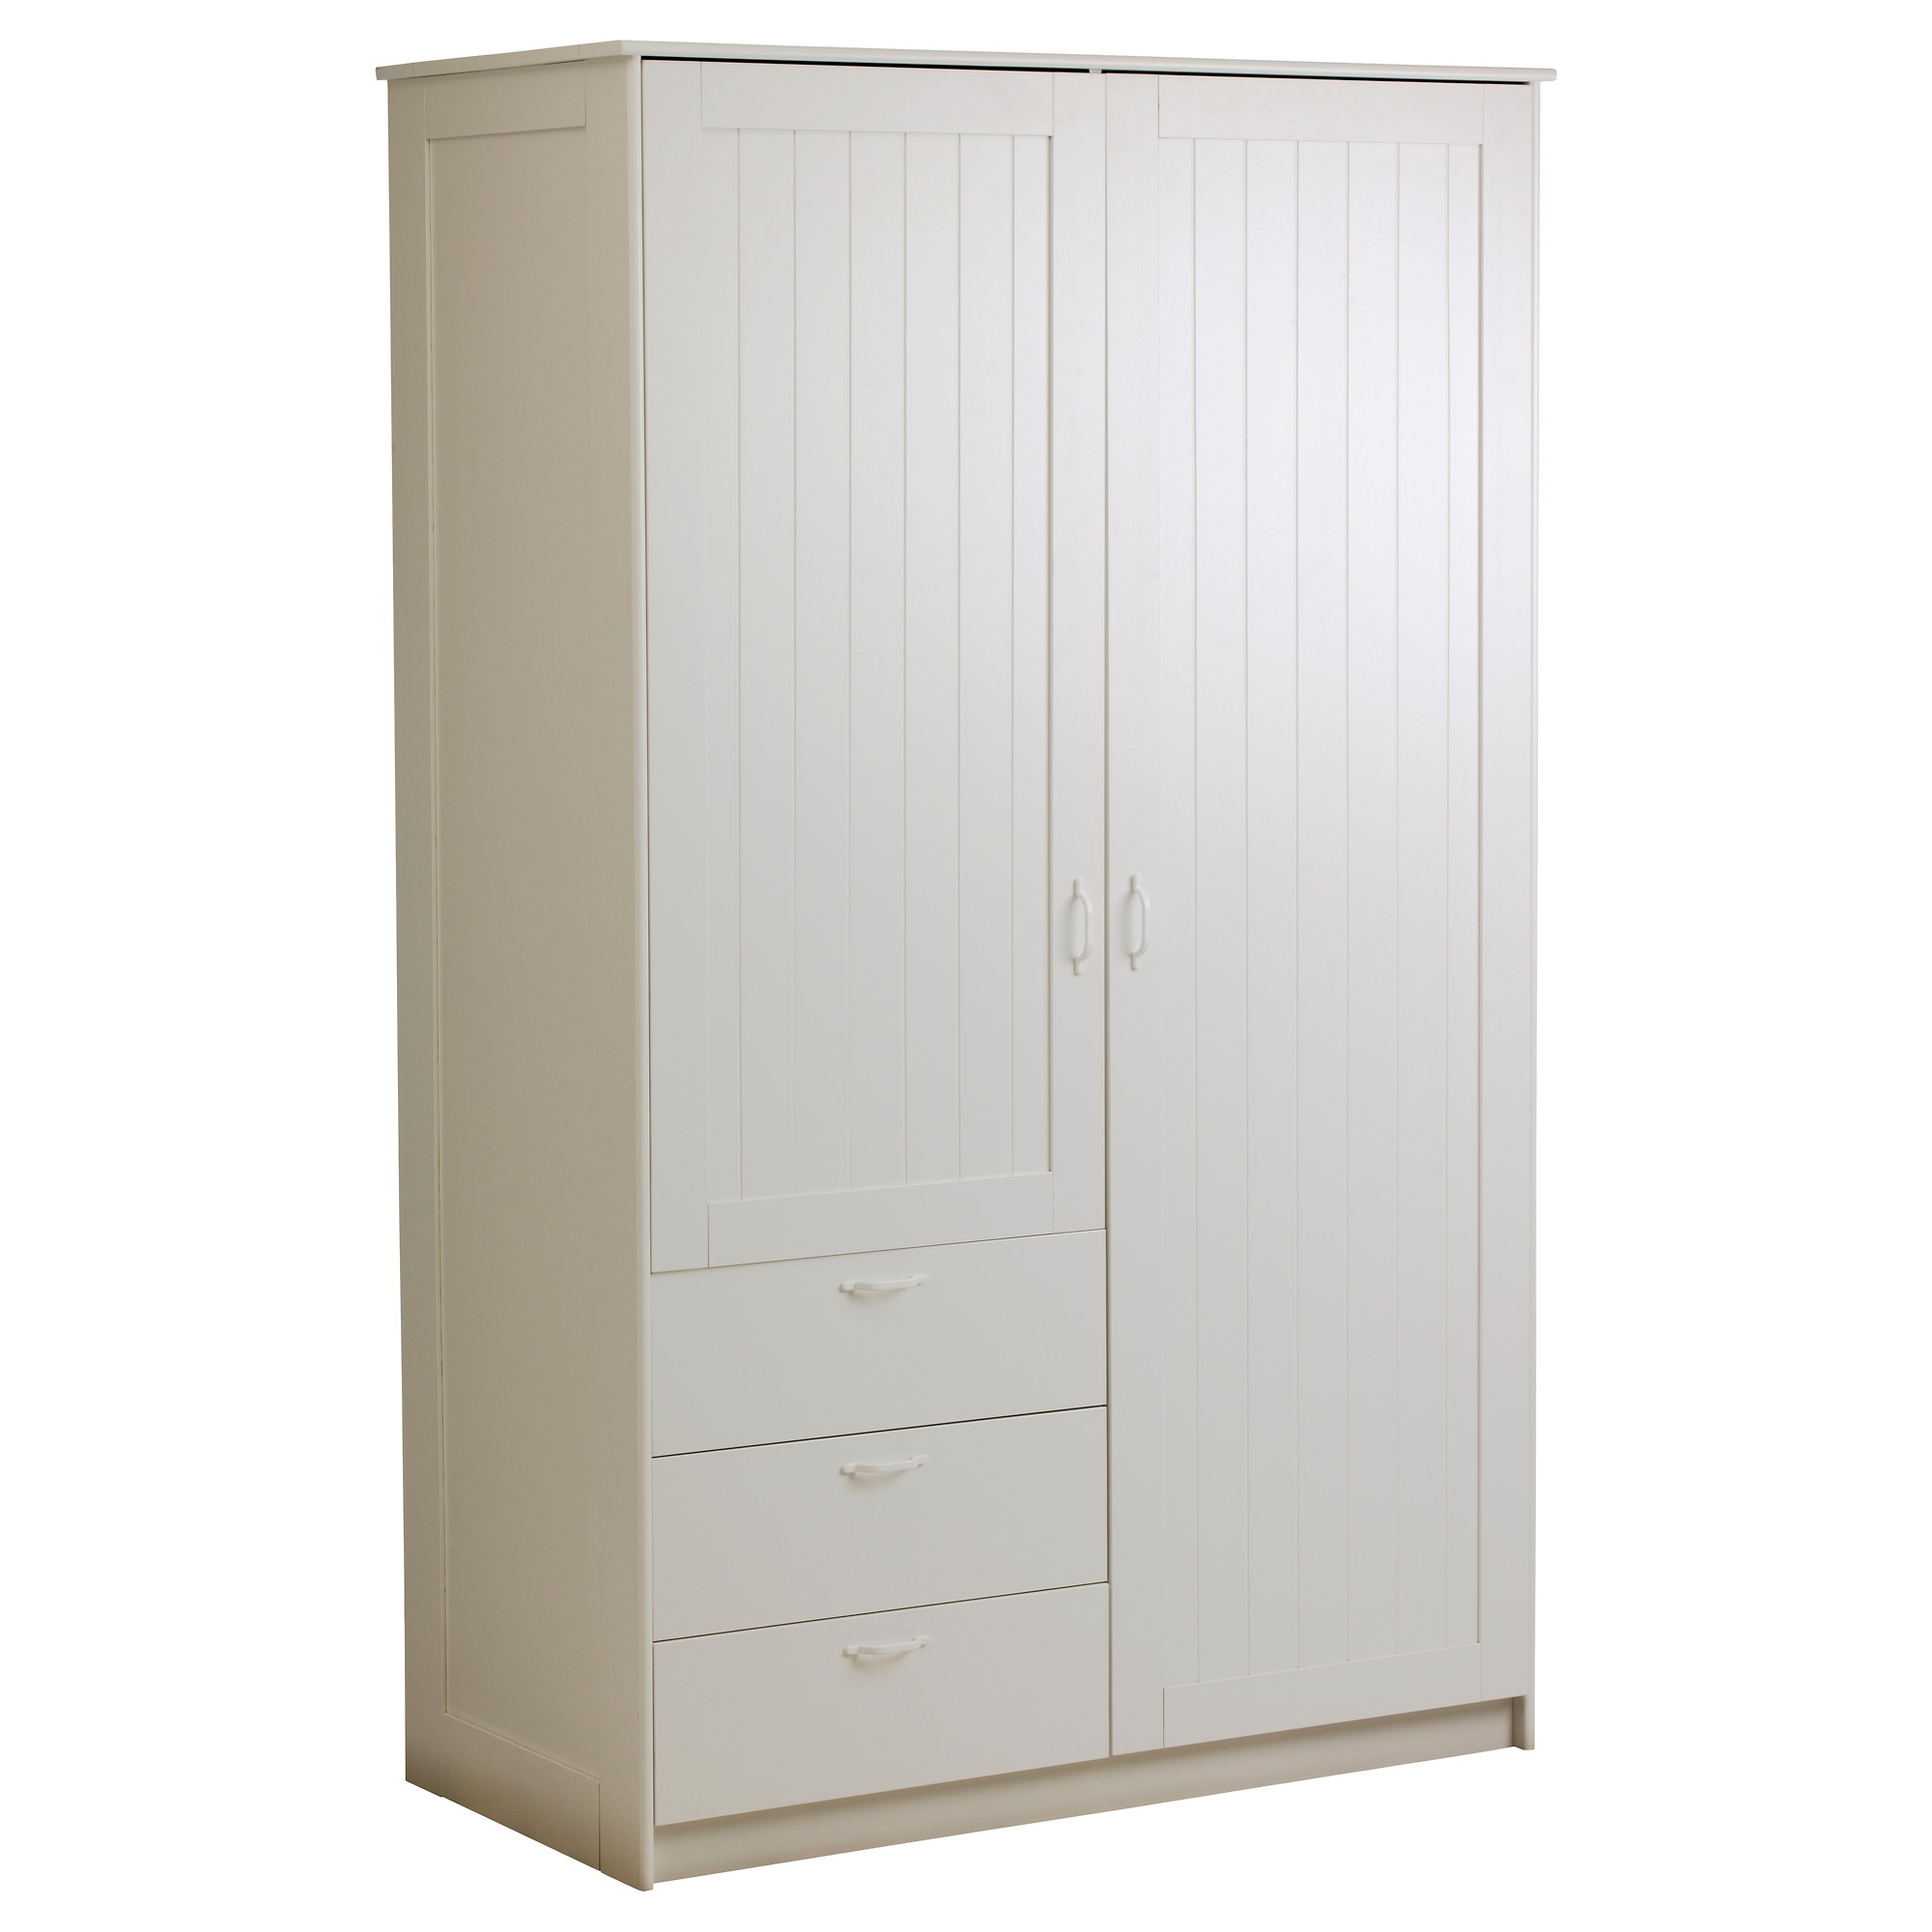 3 Door White Wardrobes With Drawers Regarding Current White 3 Door Wardrobe With Drawers Sliding Uk Children's Childs (Gallery 14 of 15)